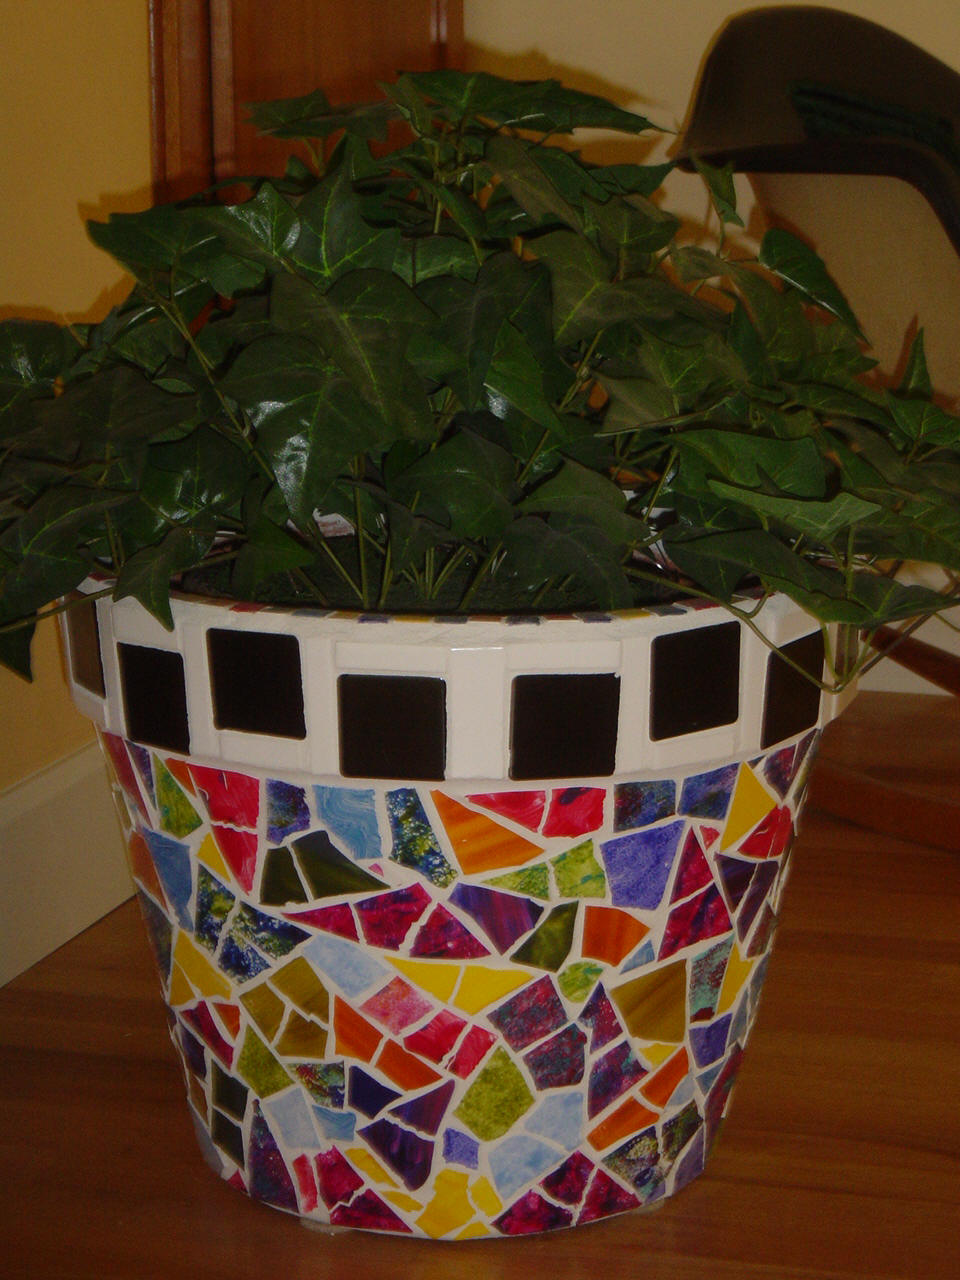 Plus, paint seeping into your plant could kill more delicate greens, as well. Check out the steps below for preparing your terra cotta pot for painting as well as how to paint terra cotta crafts for all the need-to-knows and some extra tips.